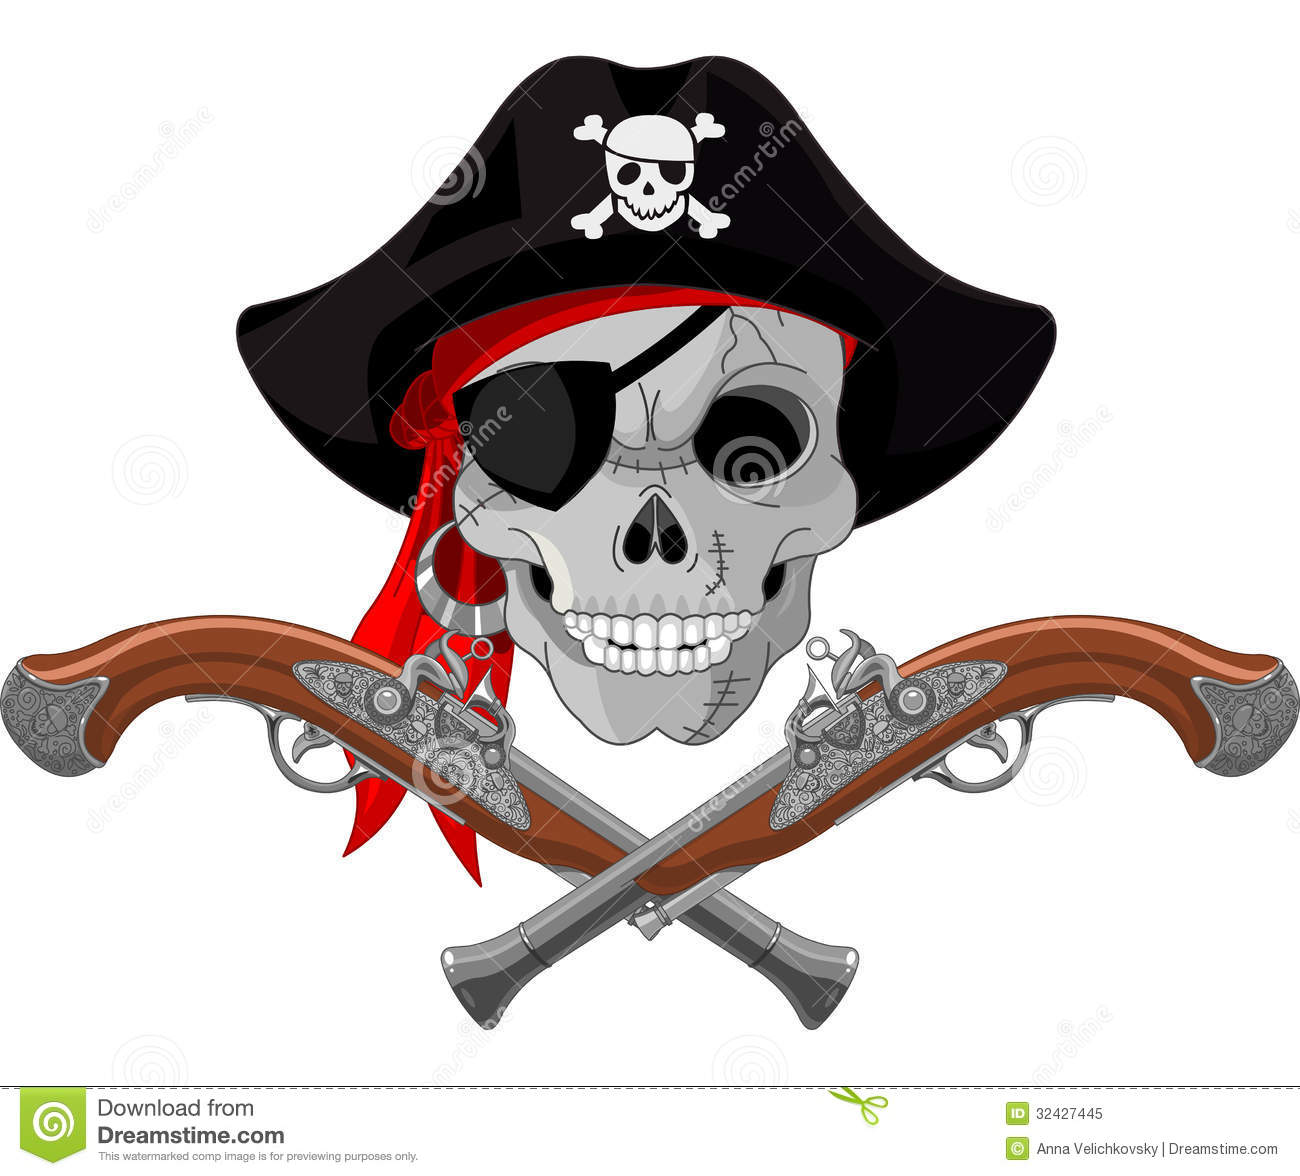 https://thumbs.dreamstime.com/z/pirate-skull-guns-crossed-32427445.jpg